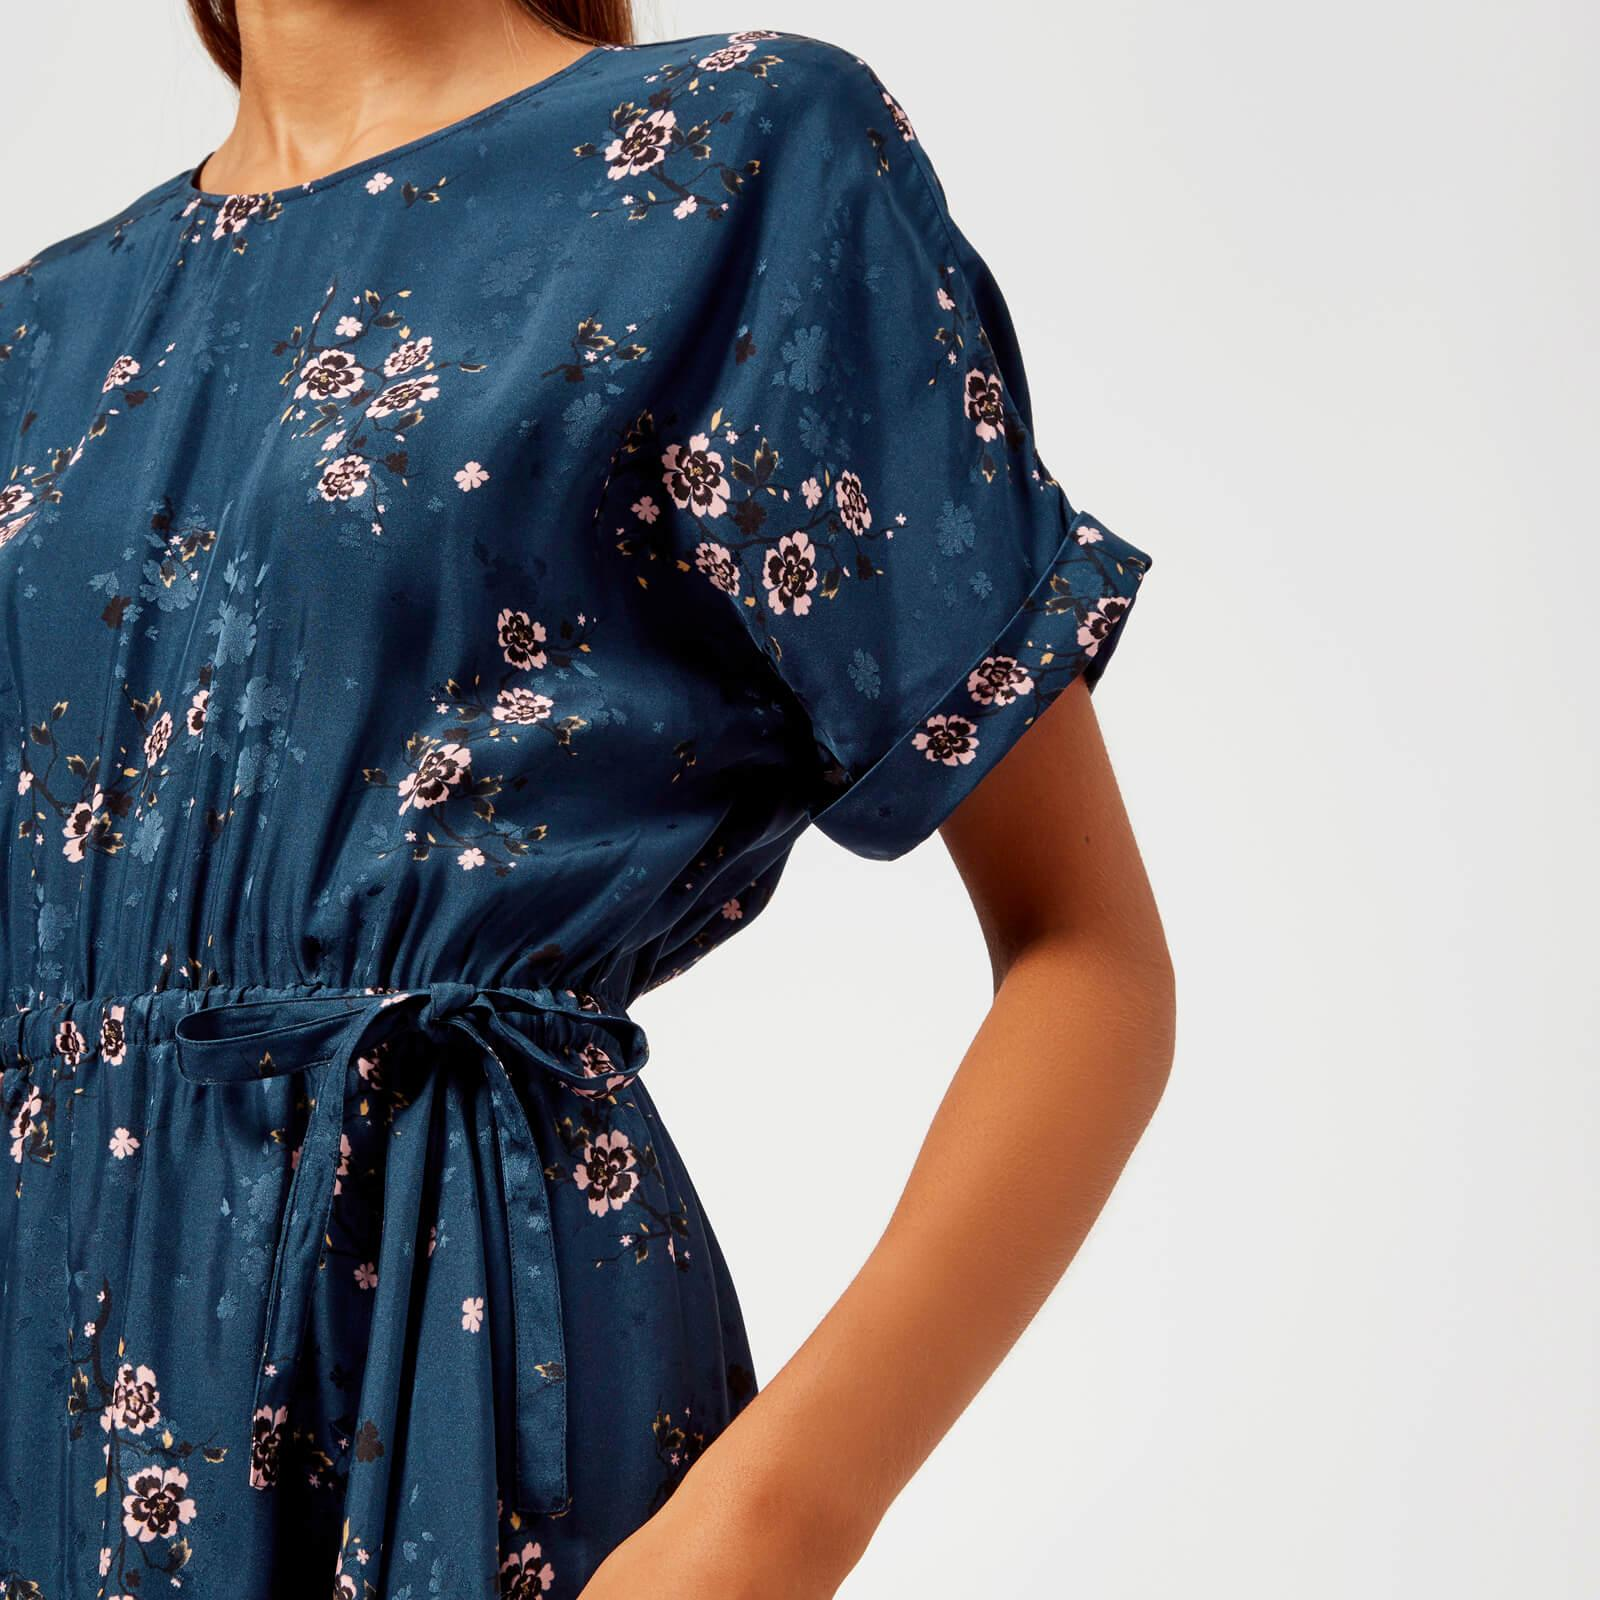 9b94d2fad5c00 KENZO - Blue Cheongsam Flower Dress - Lyst. View fullscreen